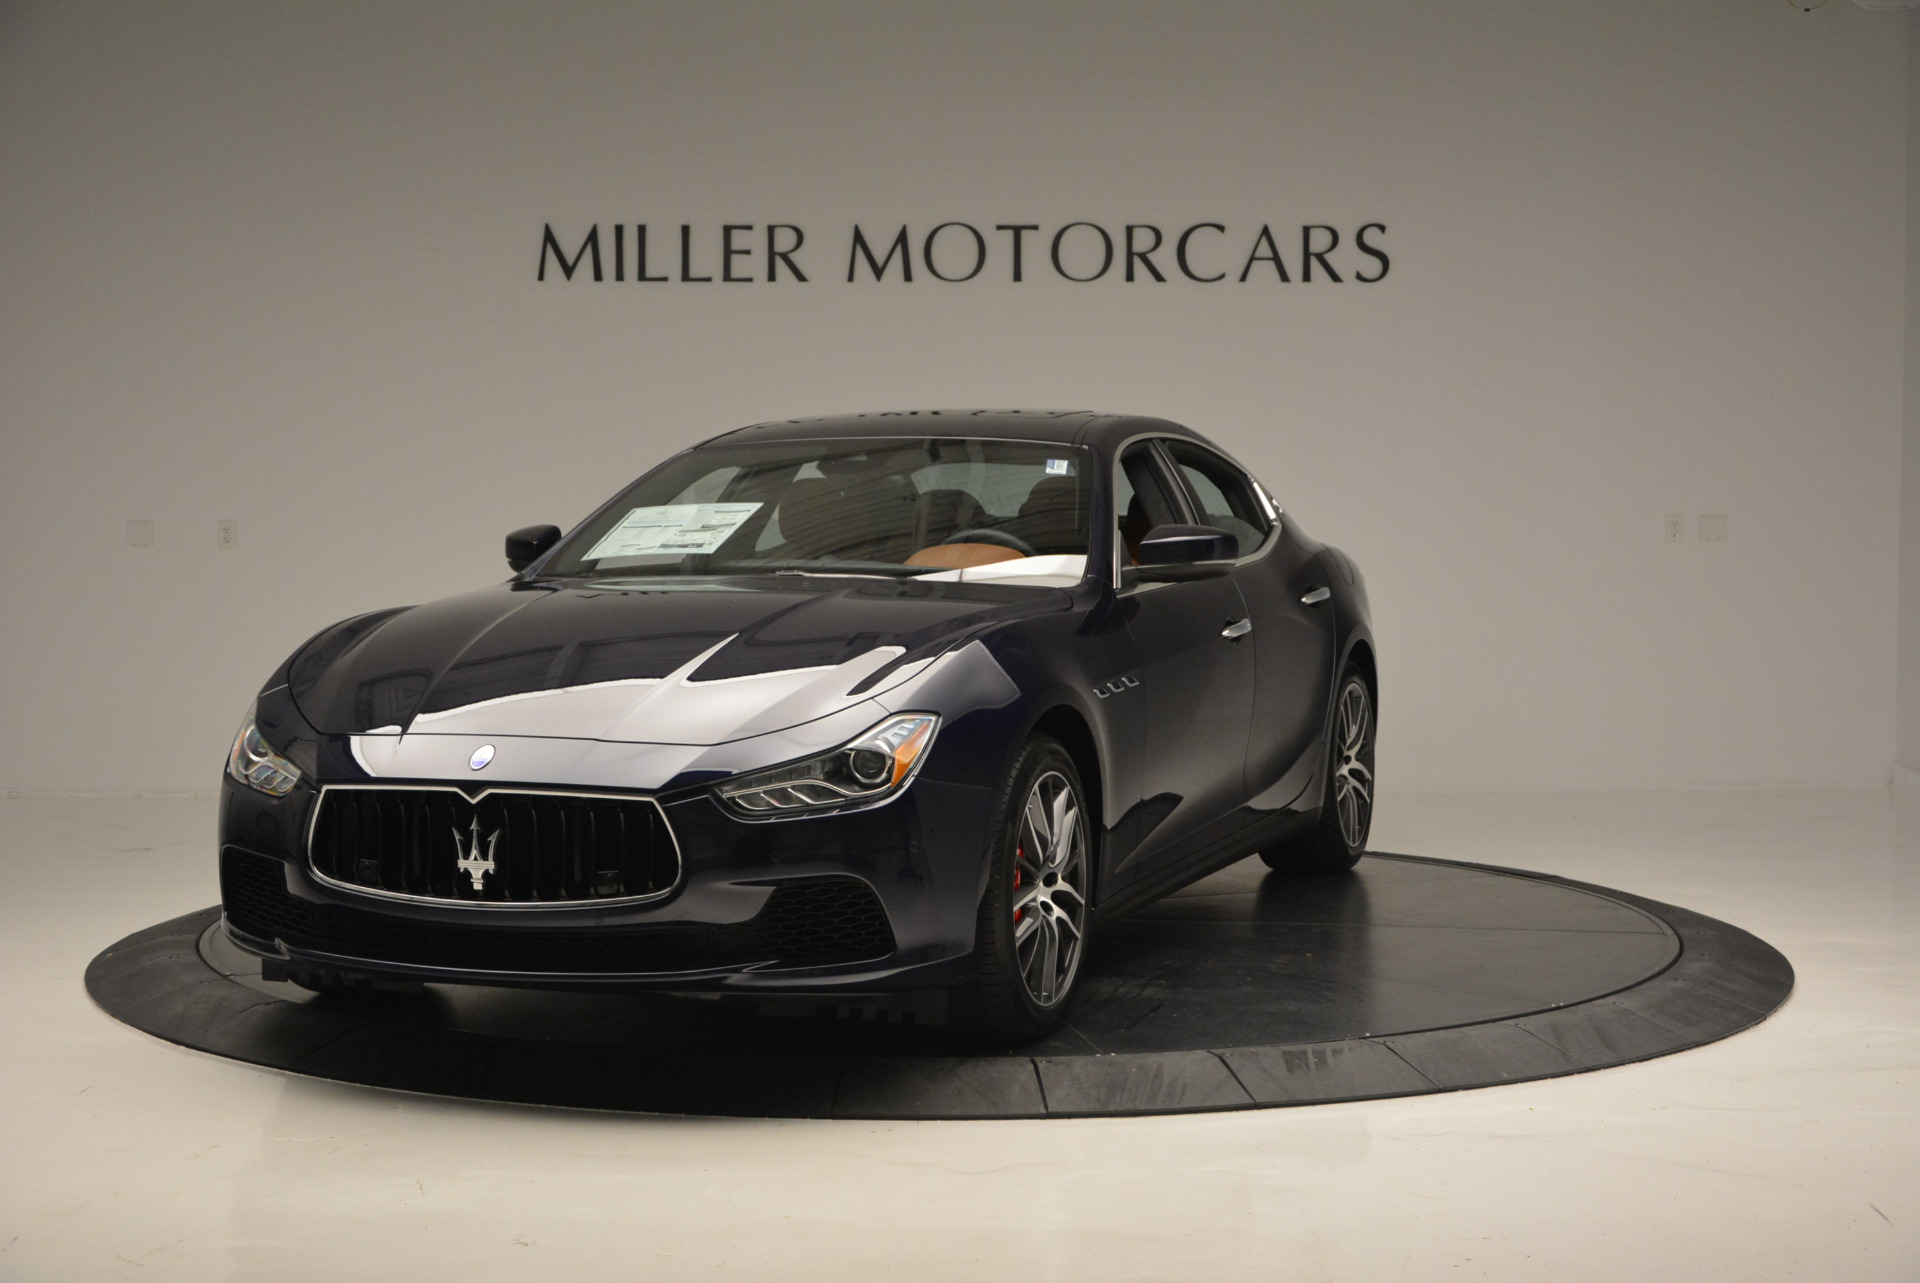 New 2017 Maserati Ghibli S Q4 for sale Sold at Rolls-Royce Motor Cars Greenwich in Greenwich CT 06830 1